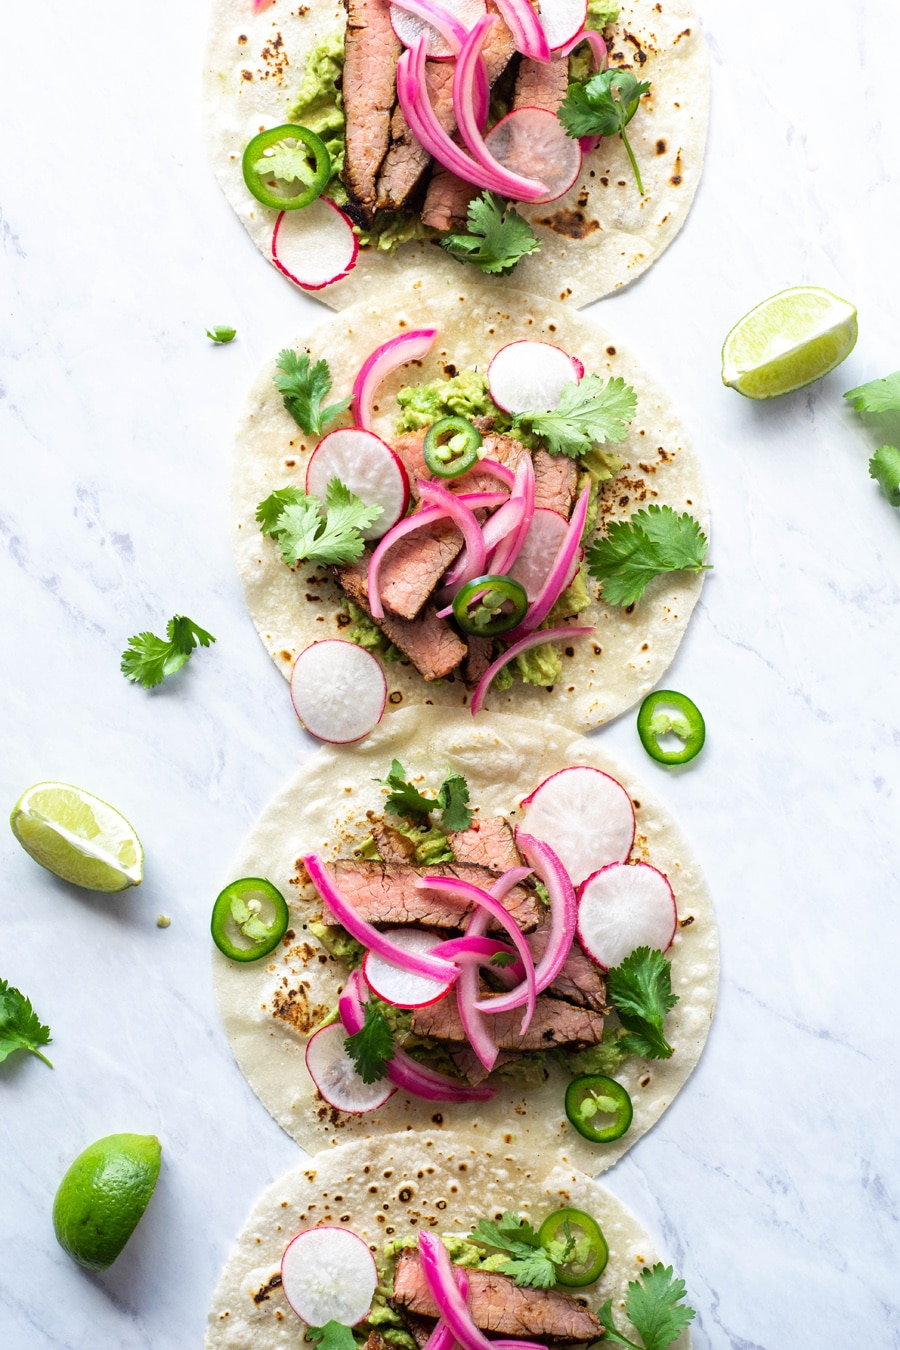 Multiple steak tacos lined up from the top to the bottom of the image on a white background with cilantro, thinly sliced jalapeno, pickled red onions